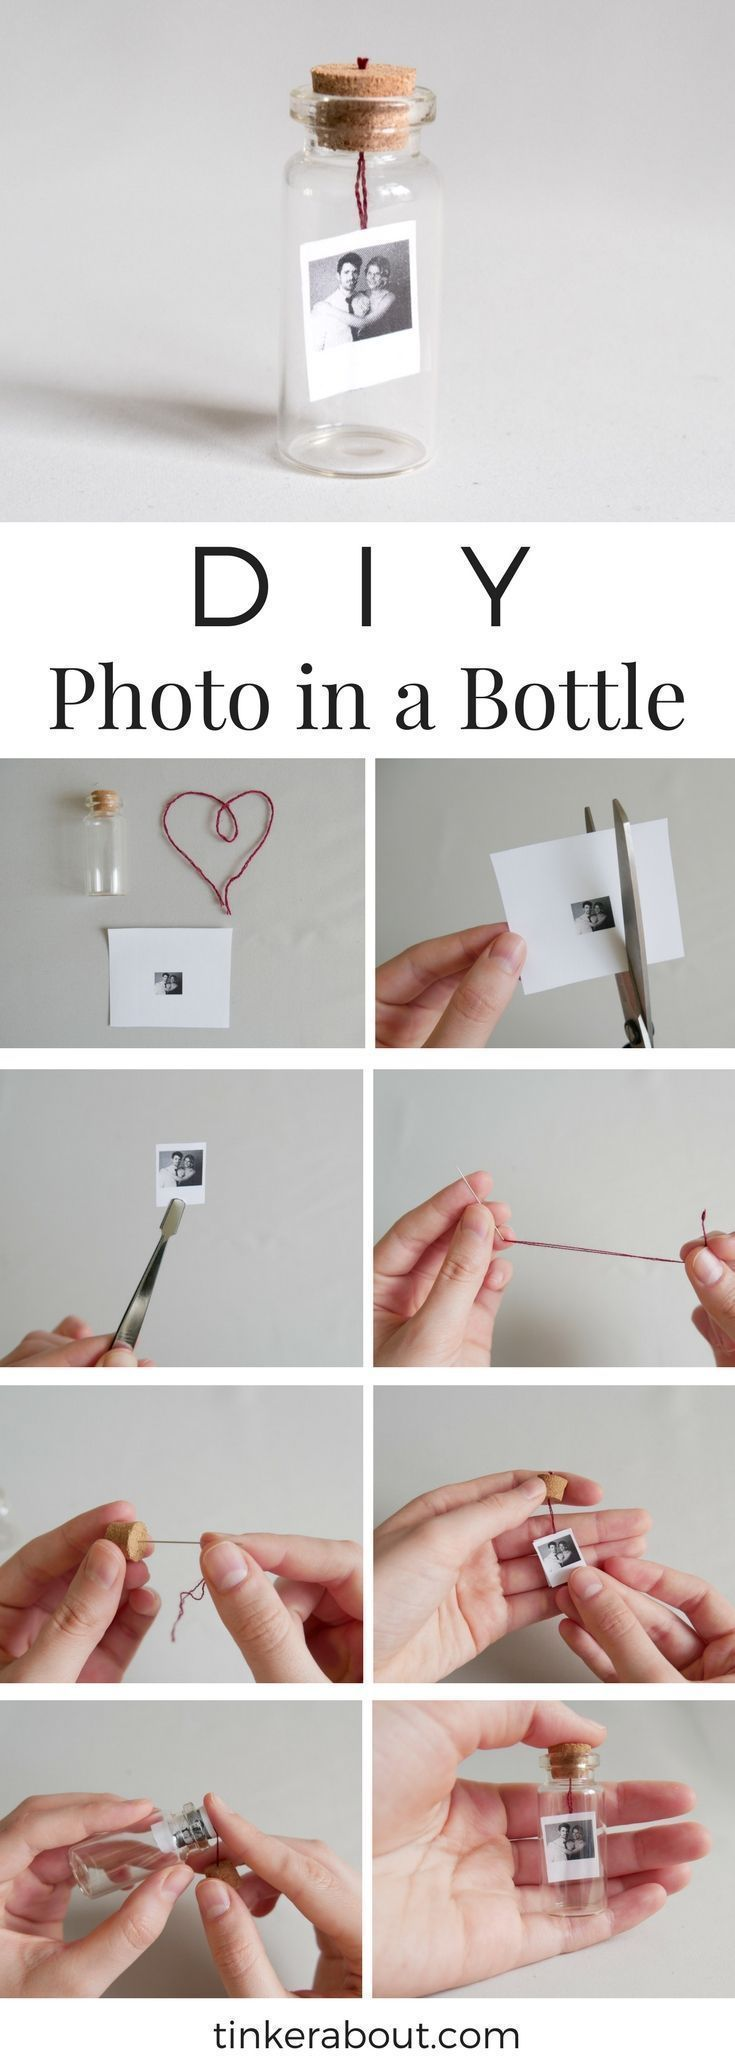 DIY small photo / message in a bottle as a gift idea for Valentine's Day, #bottle #D -#bottle #day #diy #gift #idea #message #photo #small #valentines